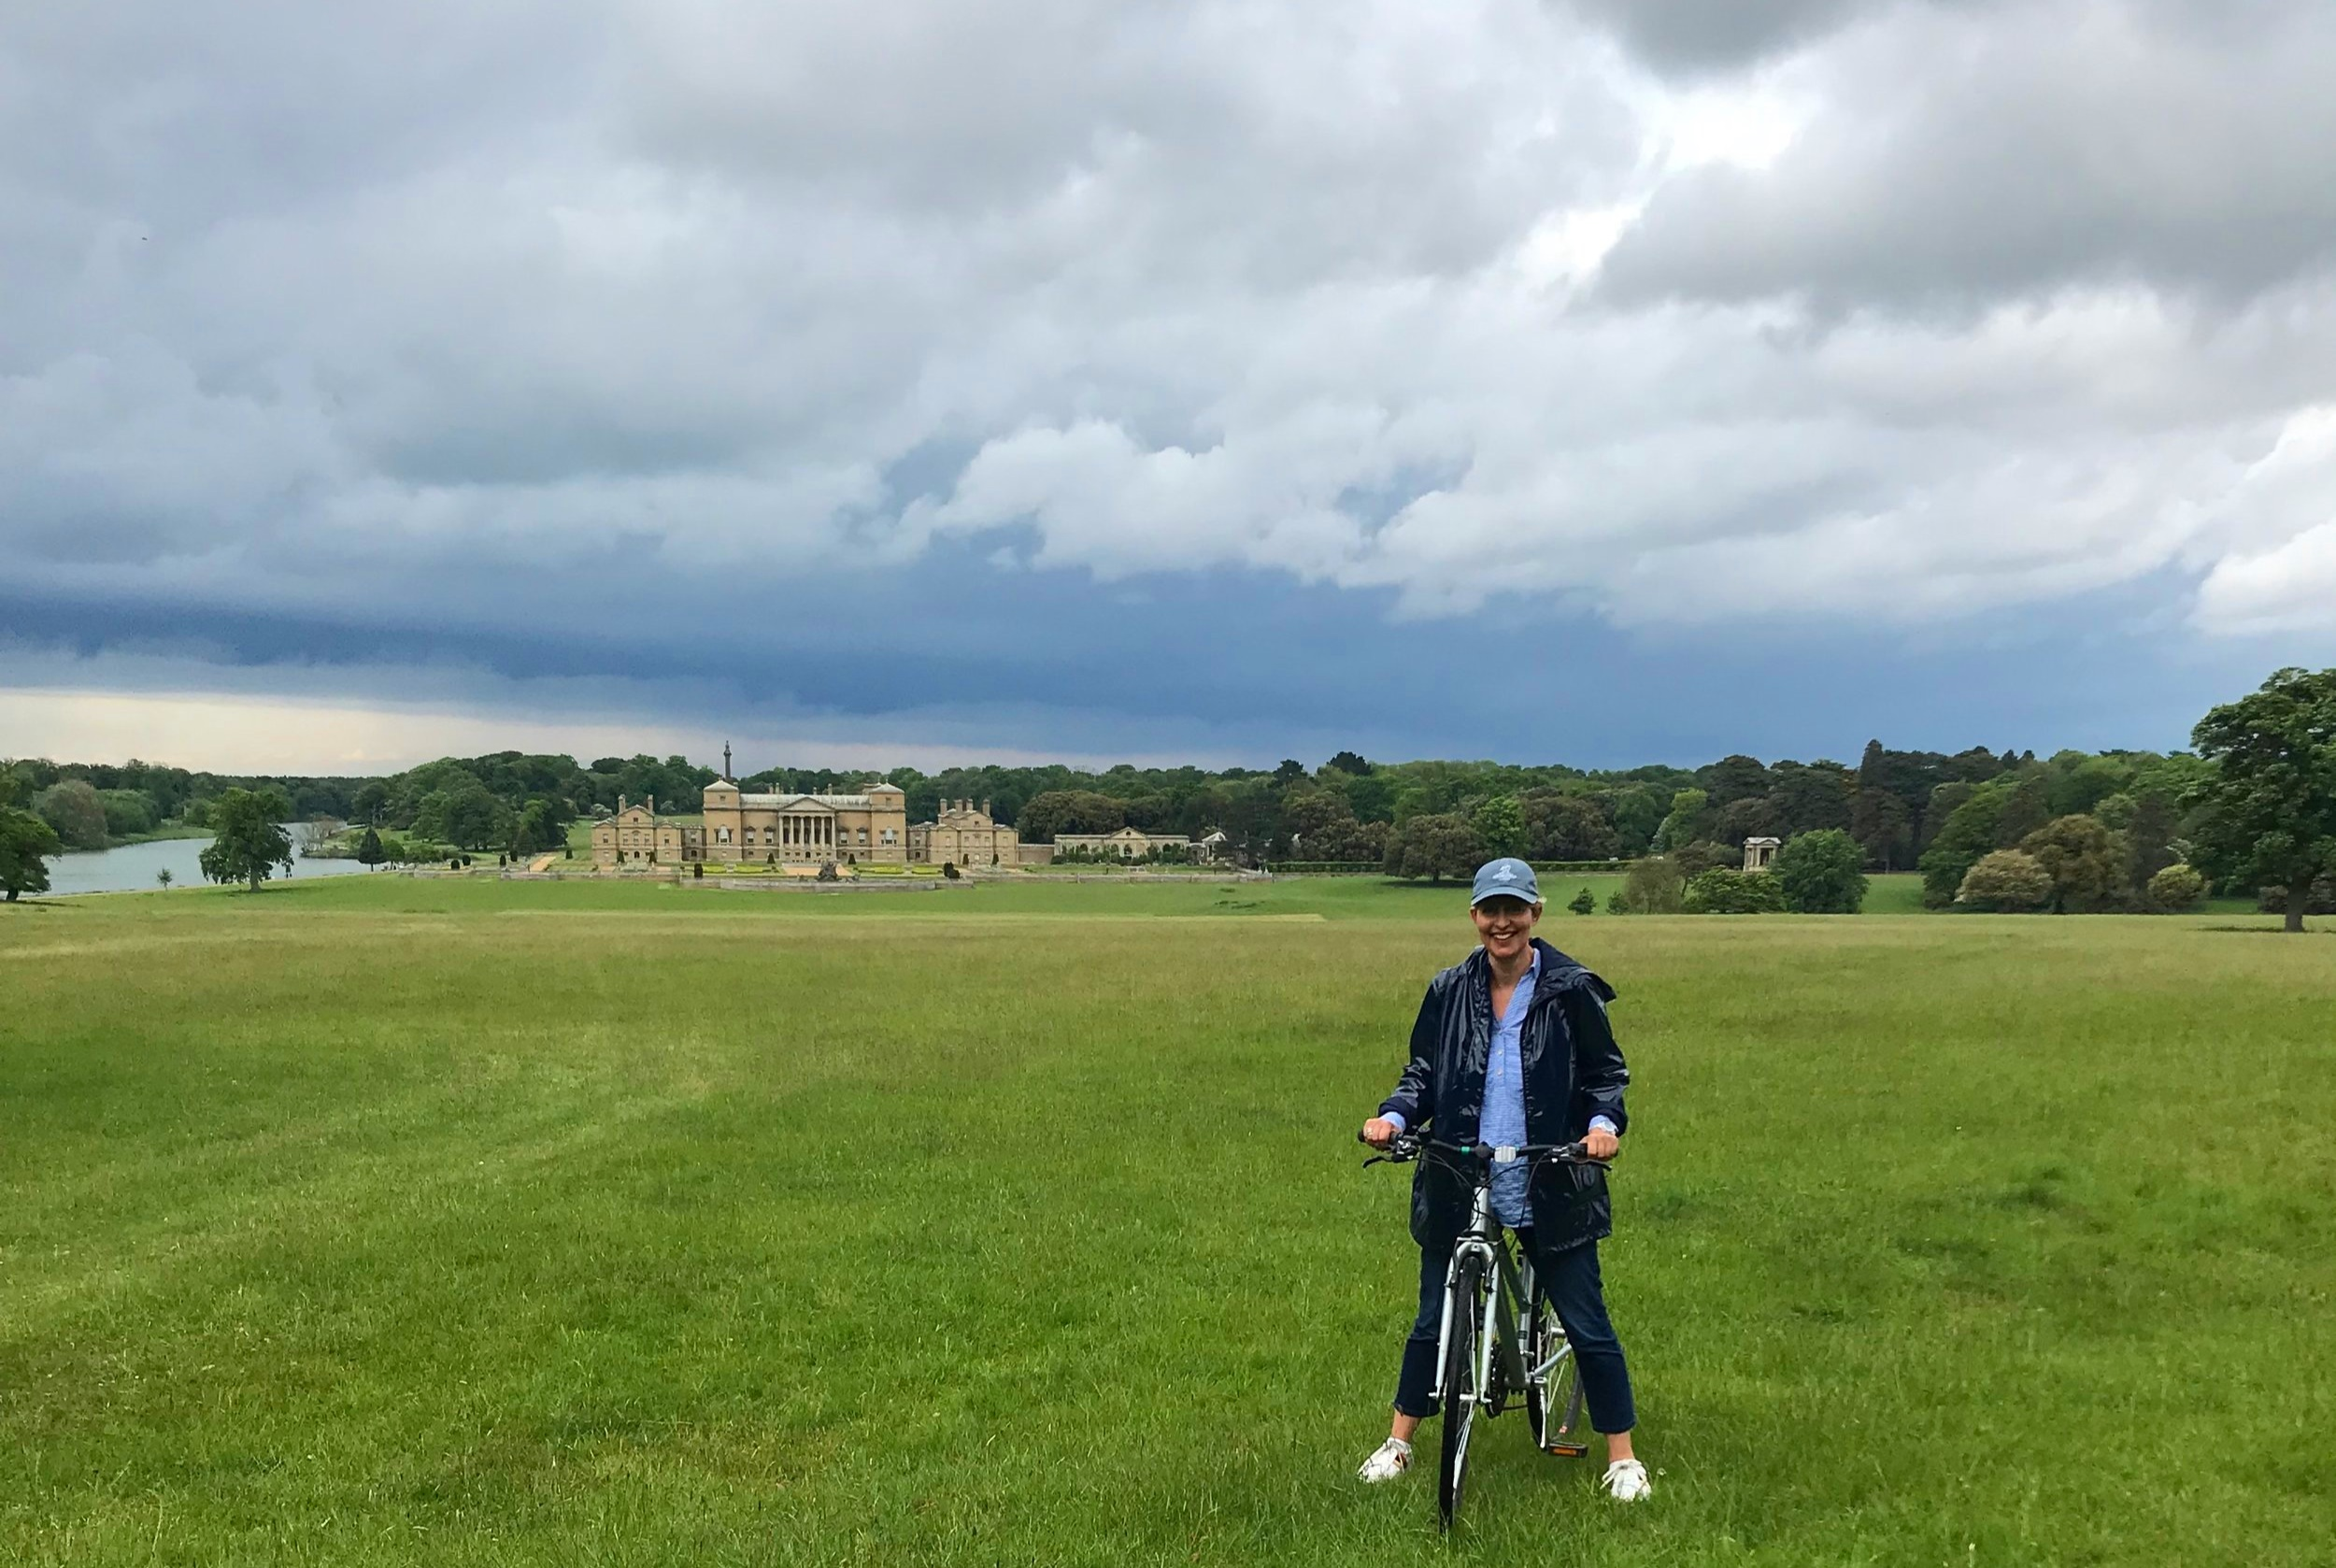 Holkham Hall in one of the brief intervals between rain showers. The cycling was along well maintained paths. I'm just on the grass to get this shot!